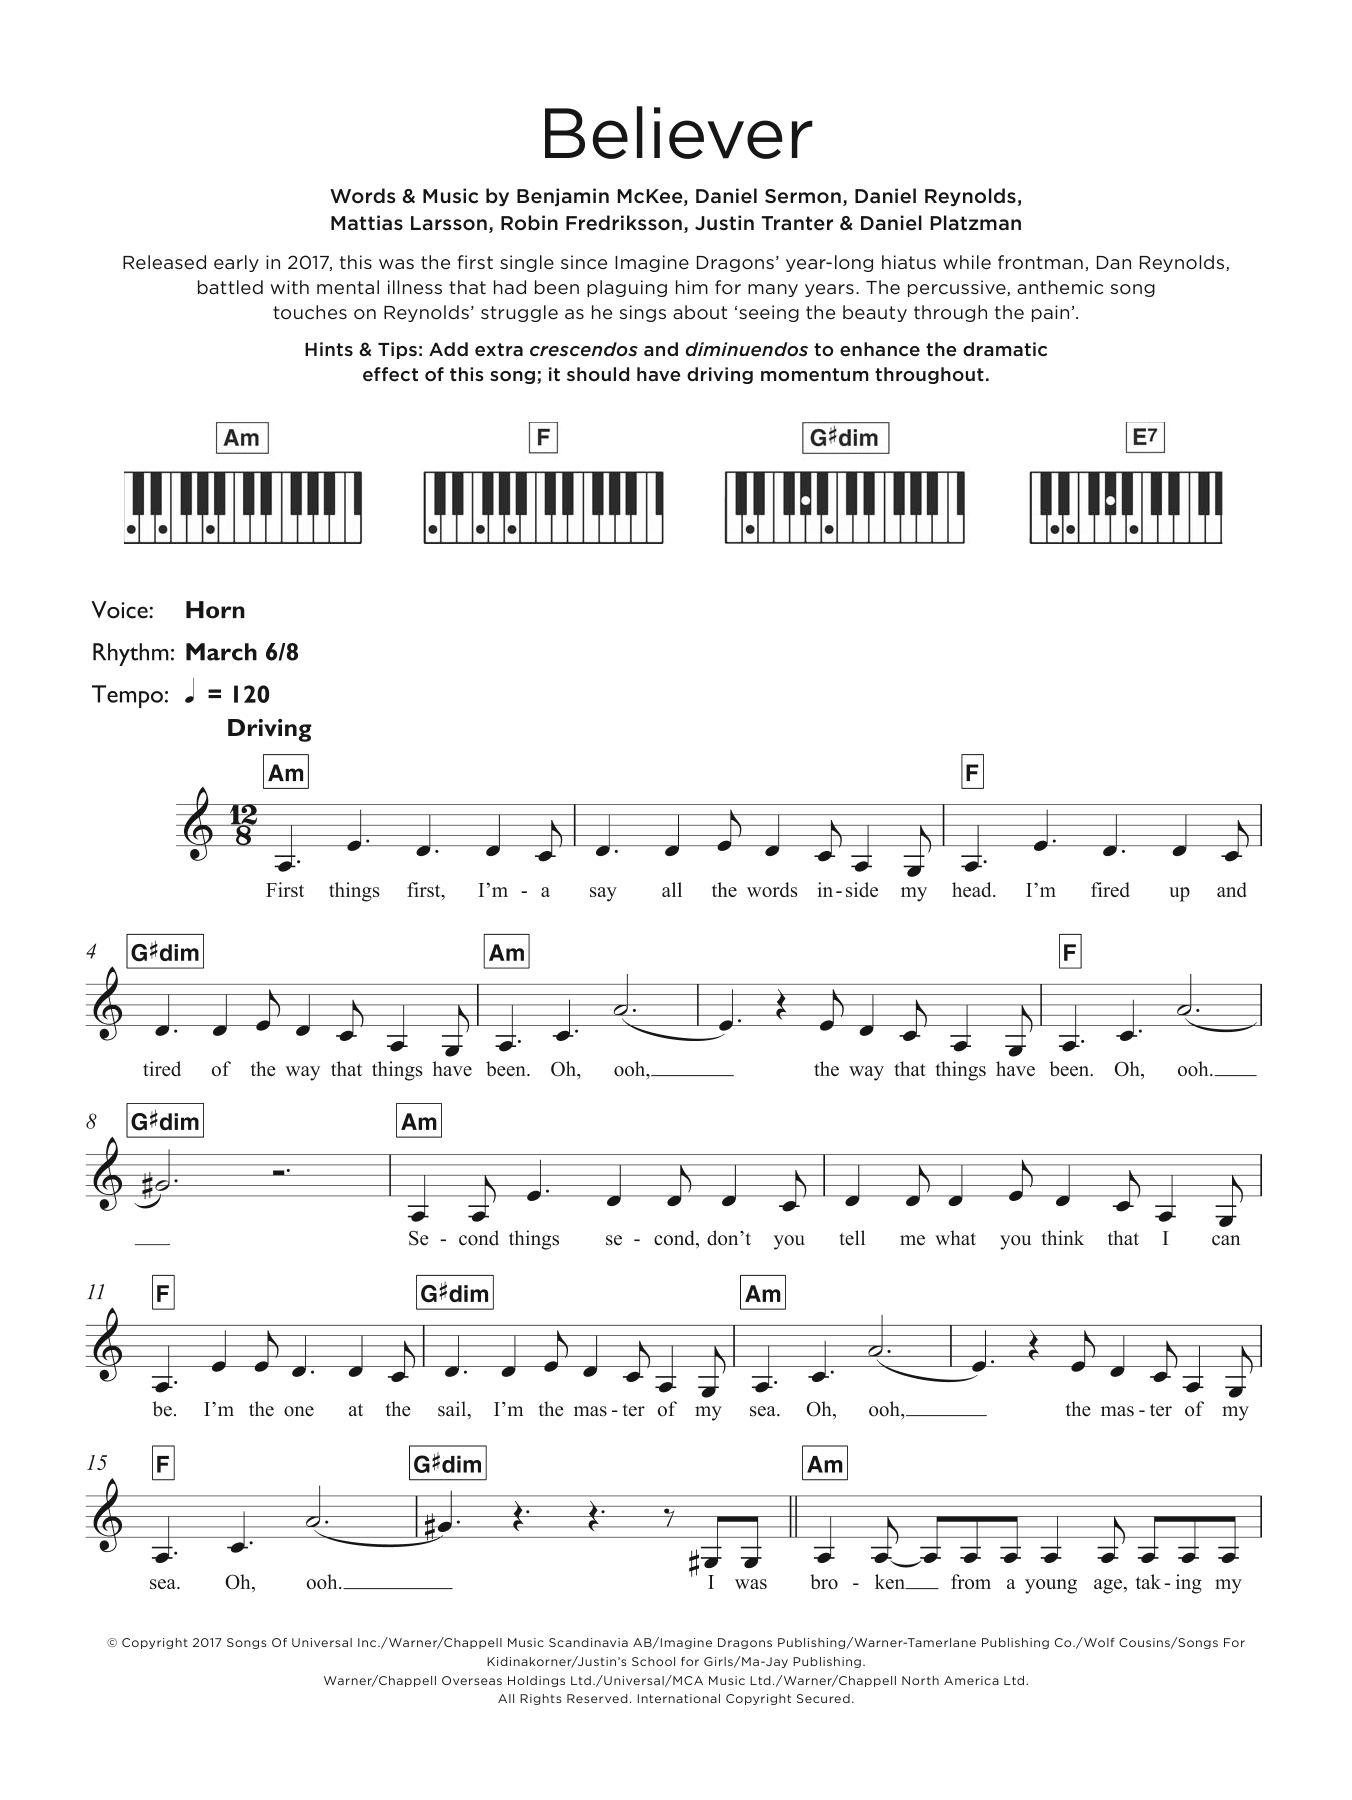 Imagine dragons believer sheet music at stantons sheet music format piano chord hexwebz Images